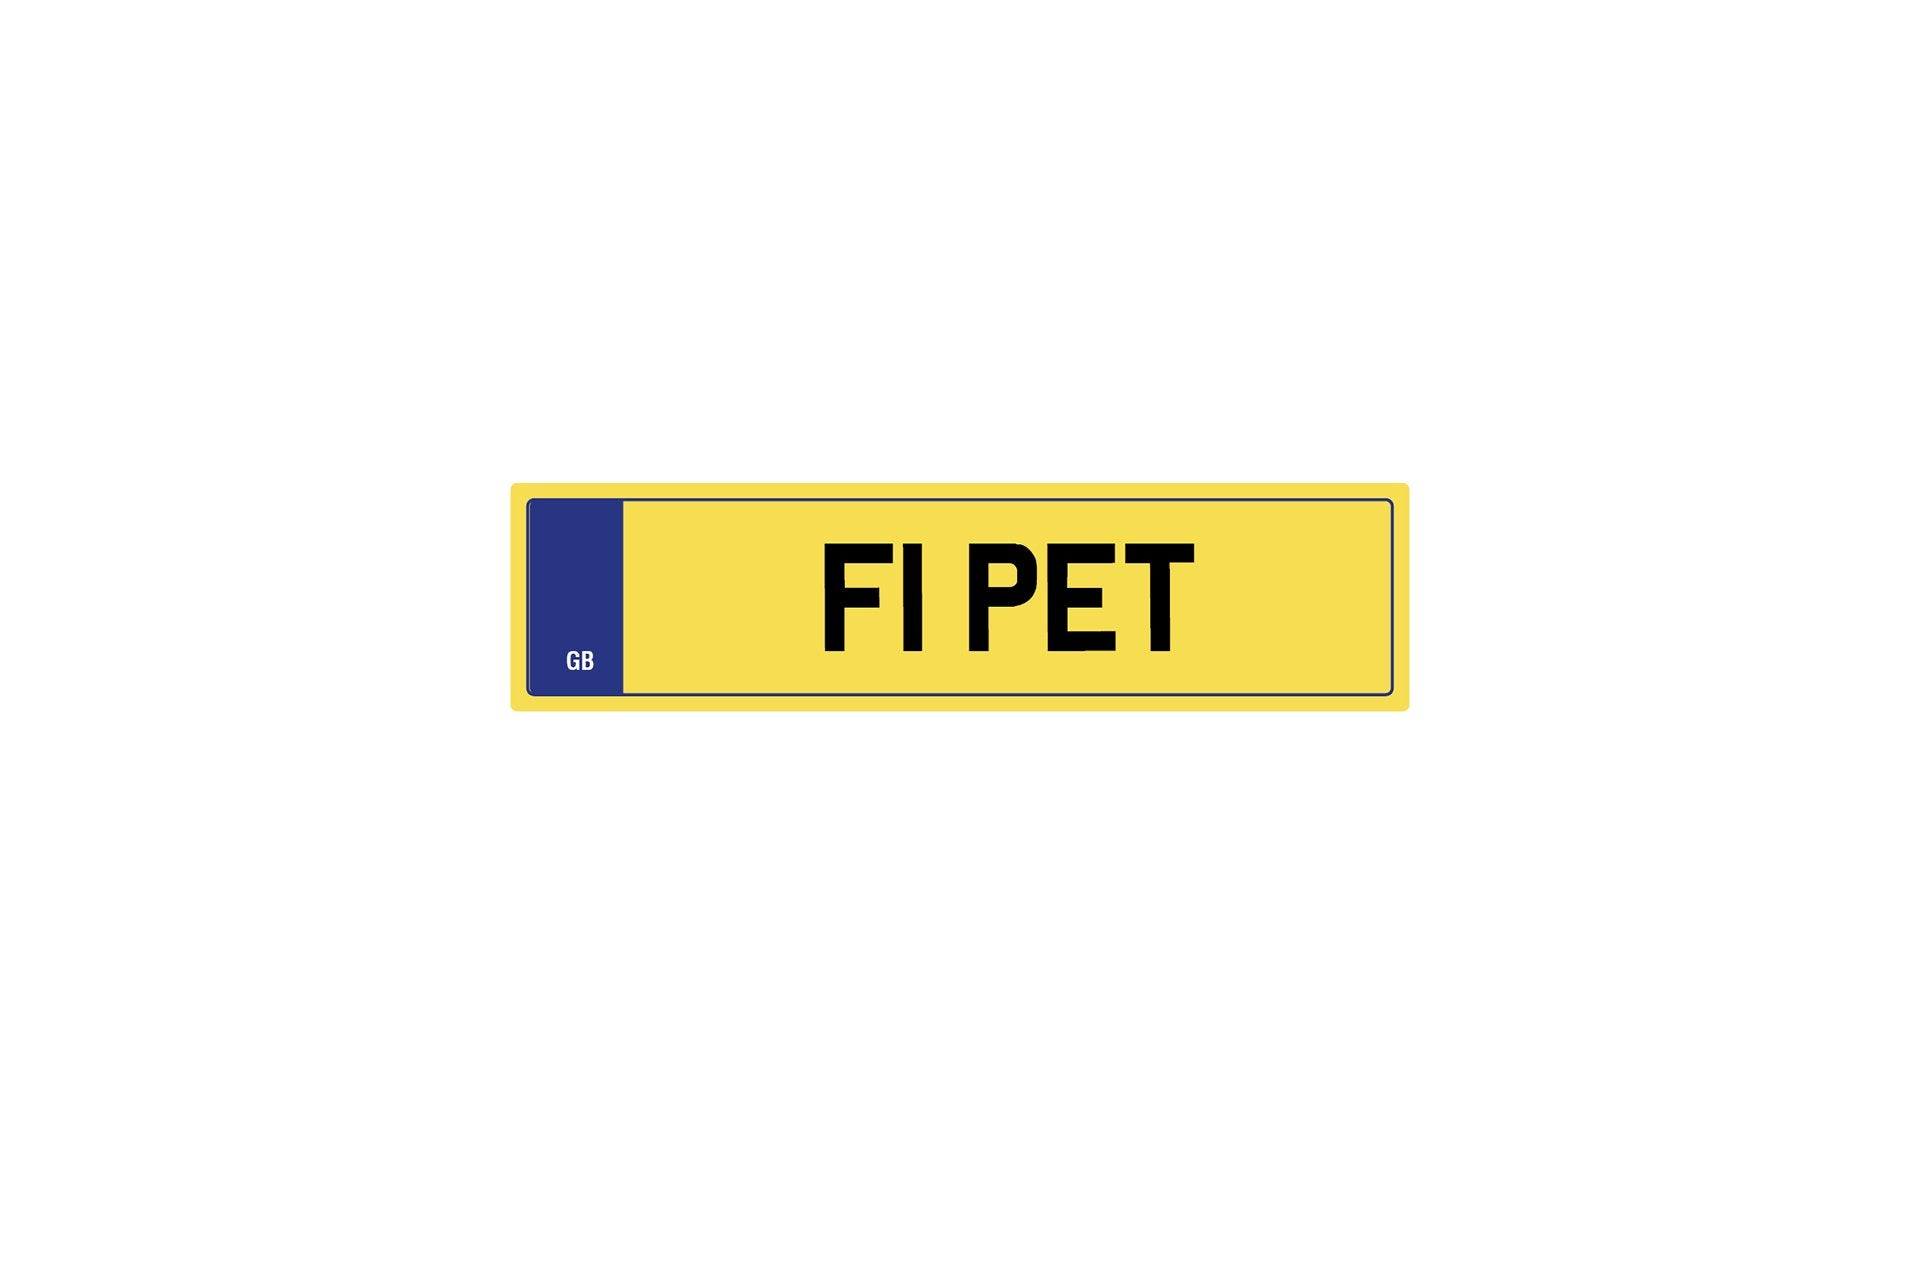 Private Plate F1 Pet by Kahn - Image 249